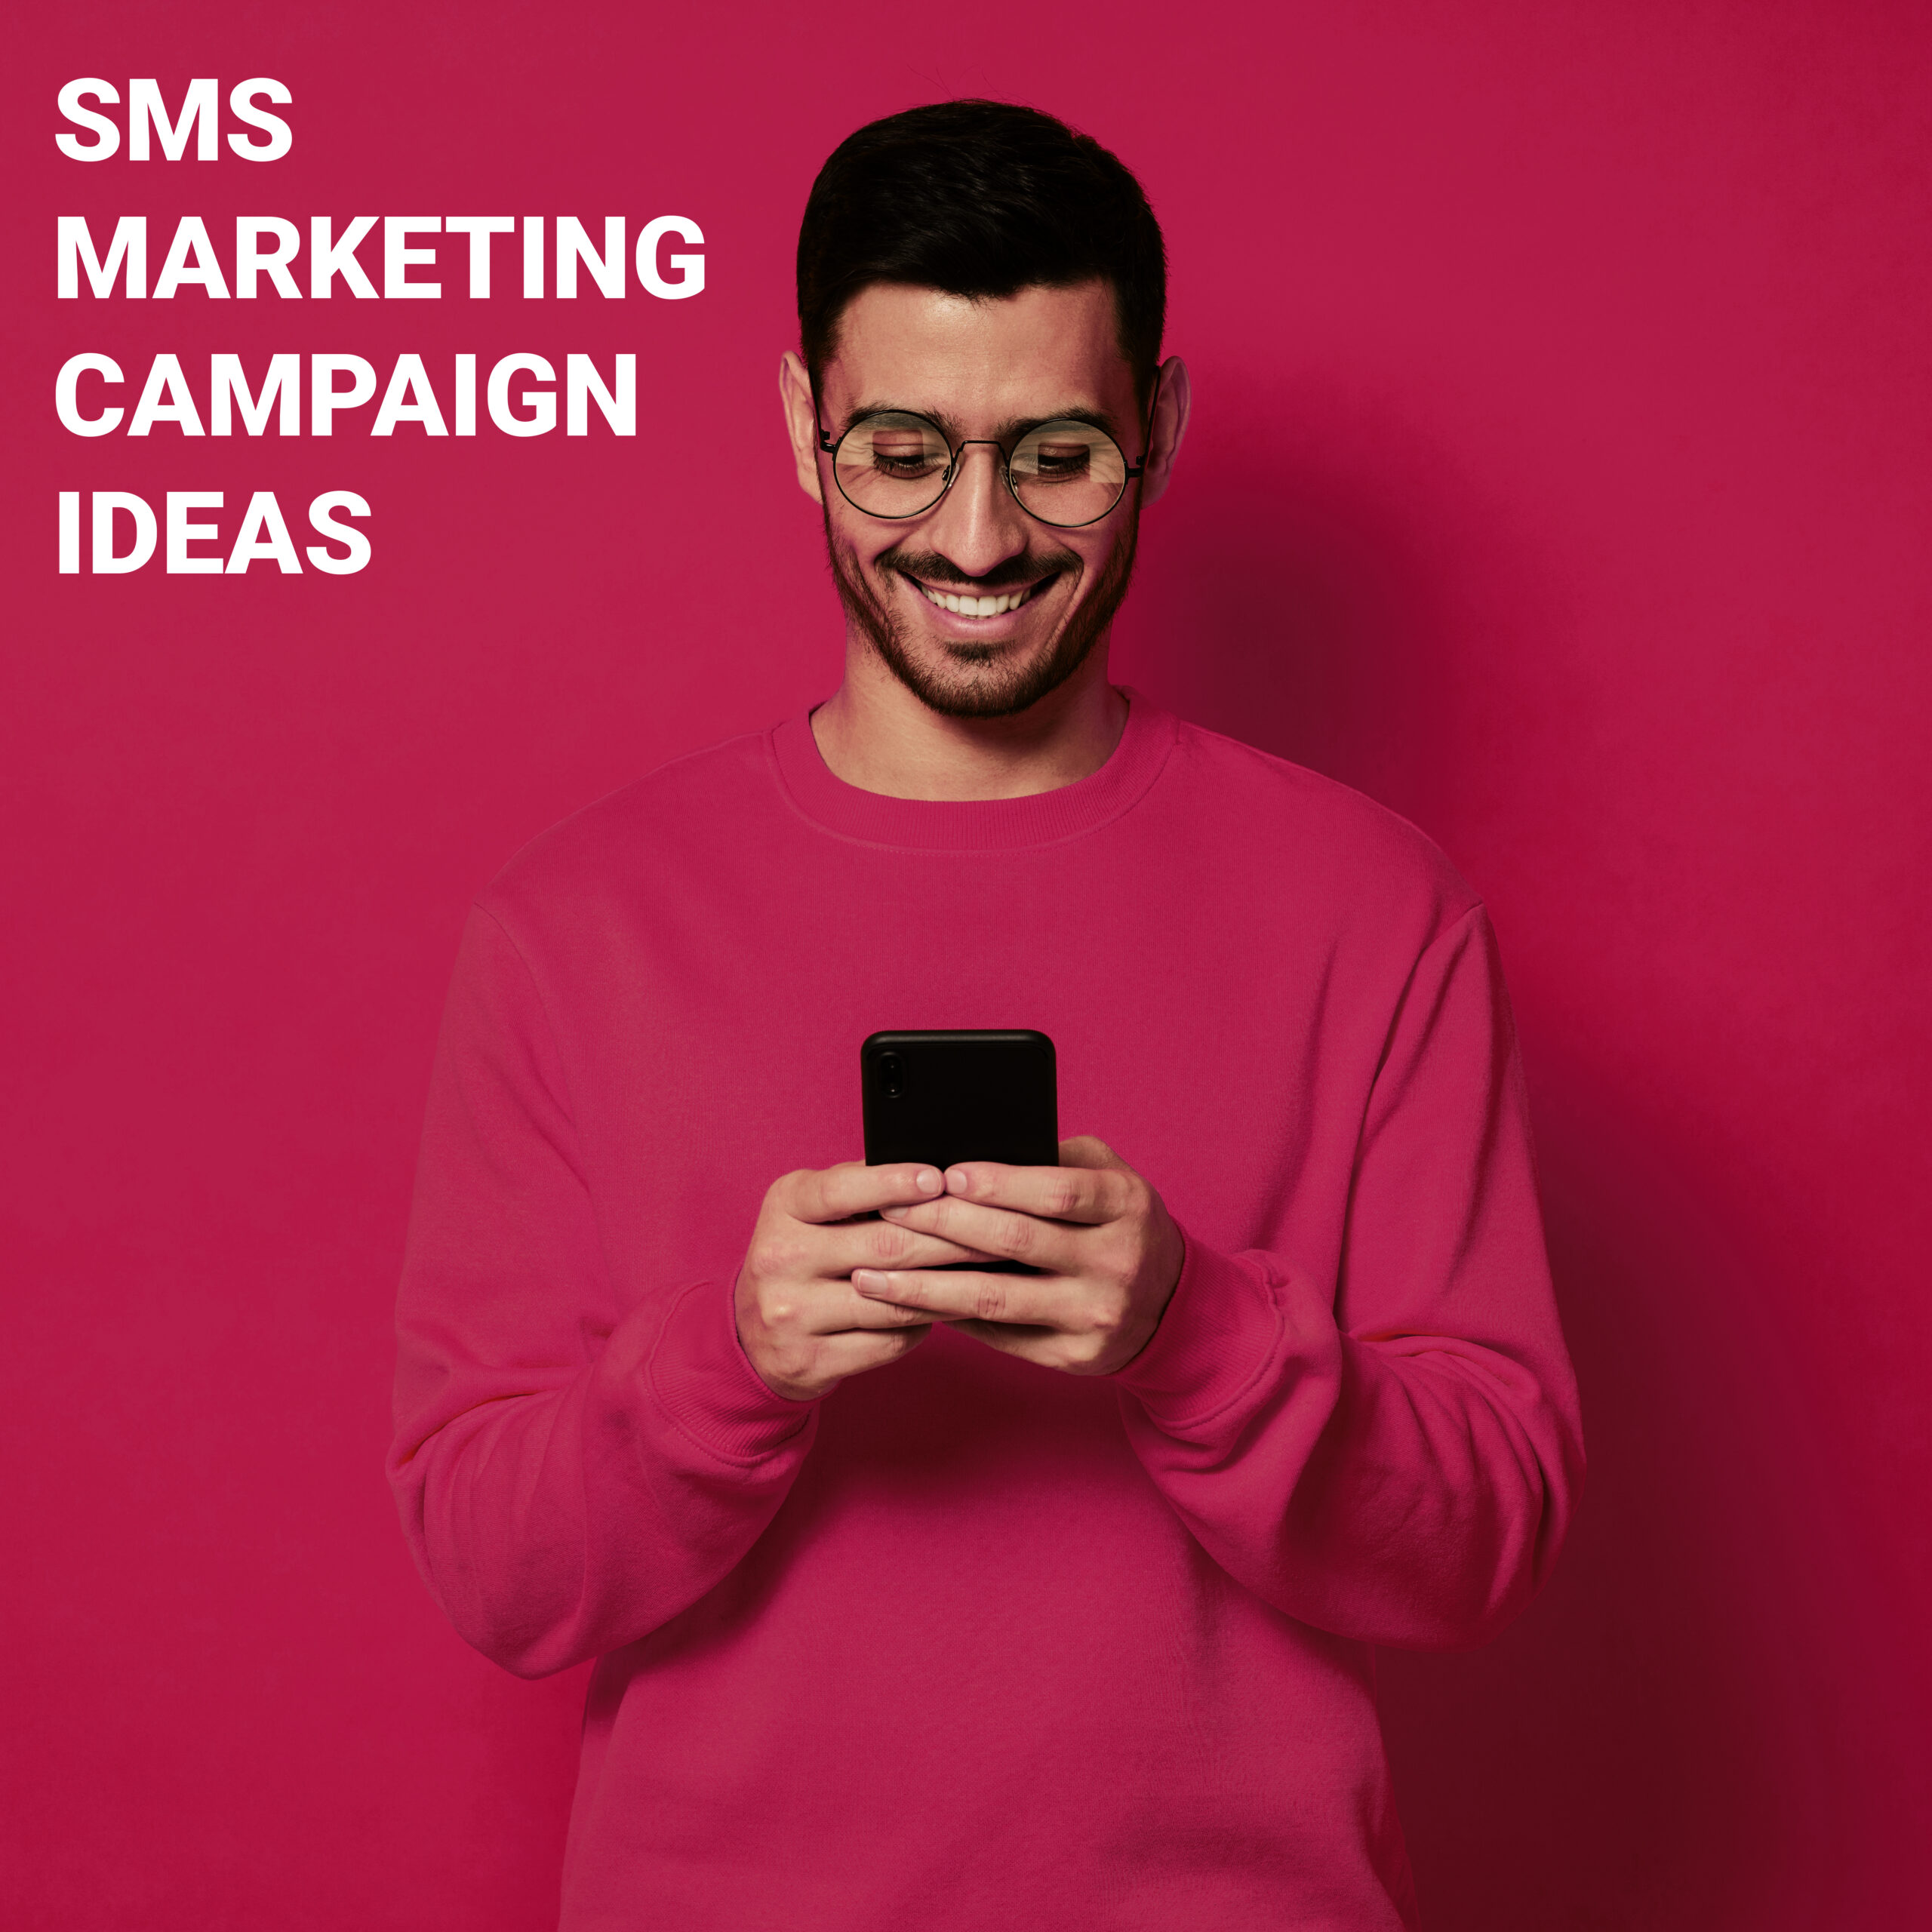 Customer Looking at an SMS Marketing Campaign